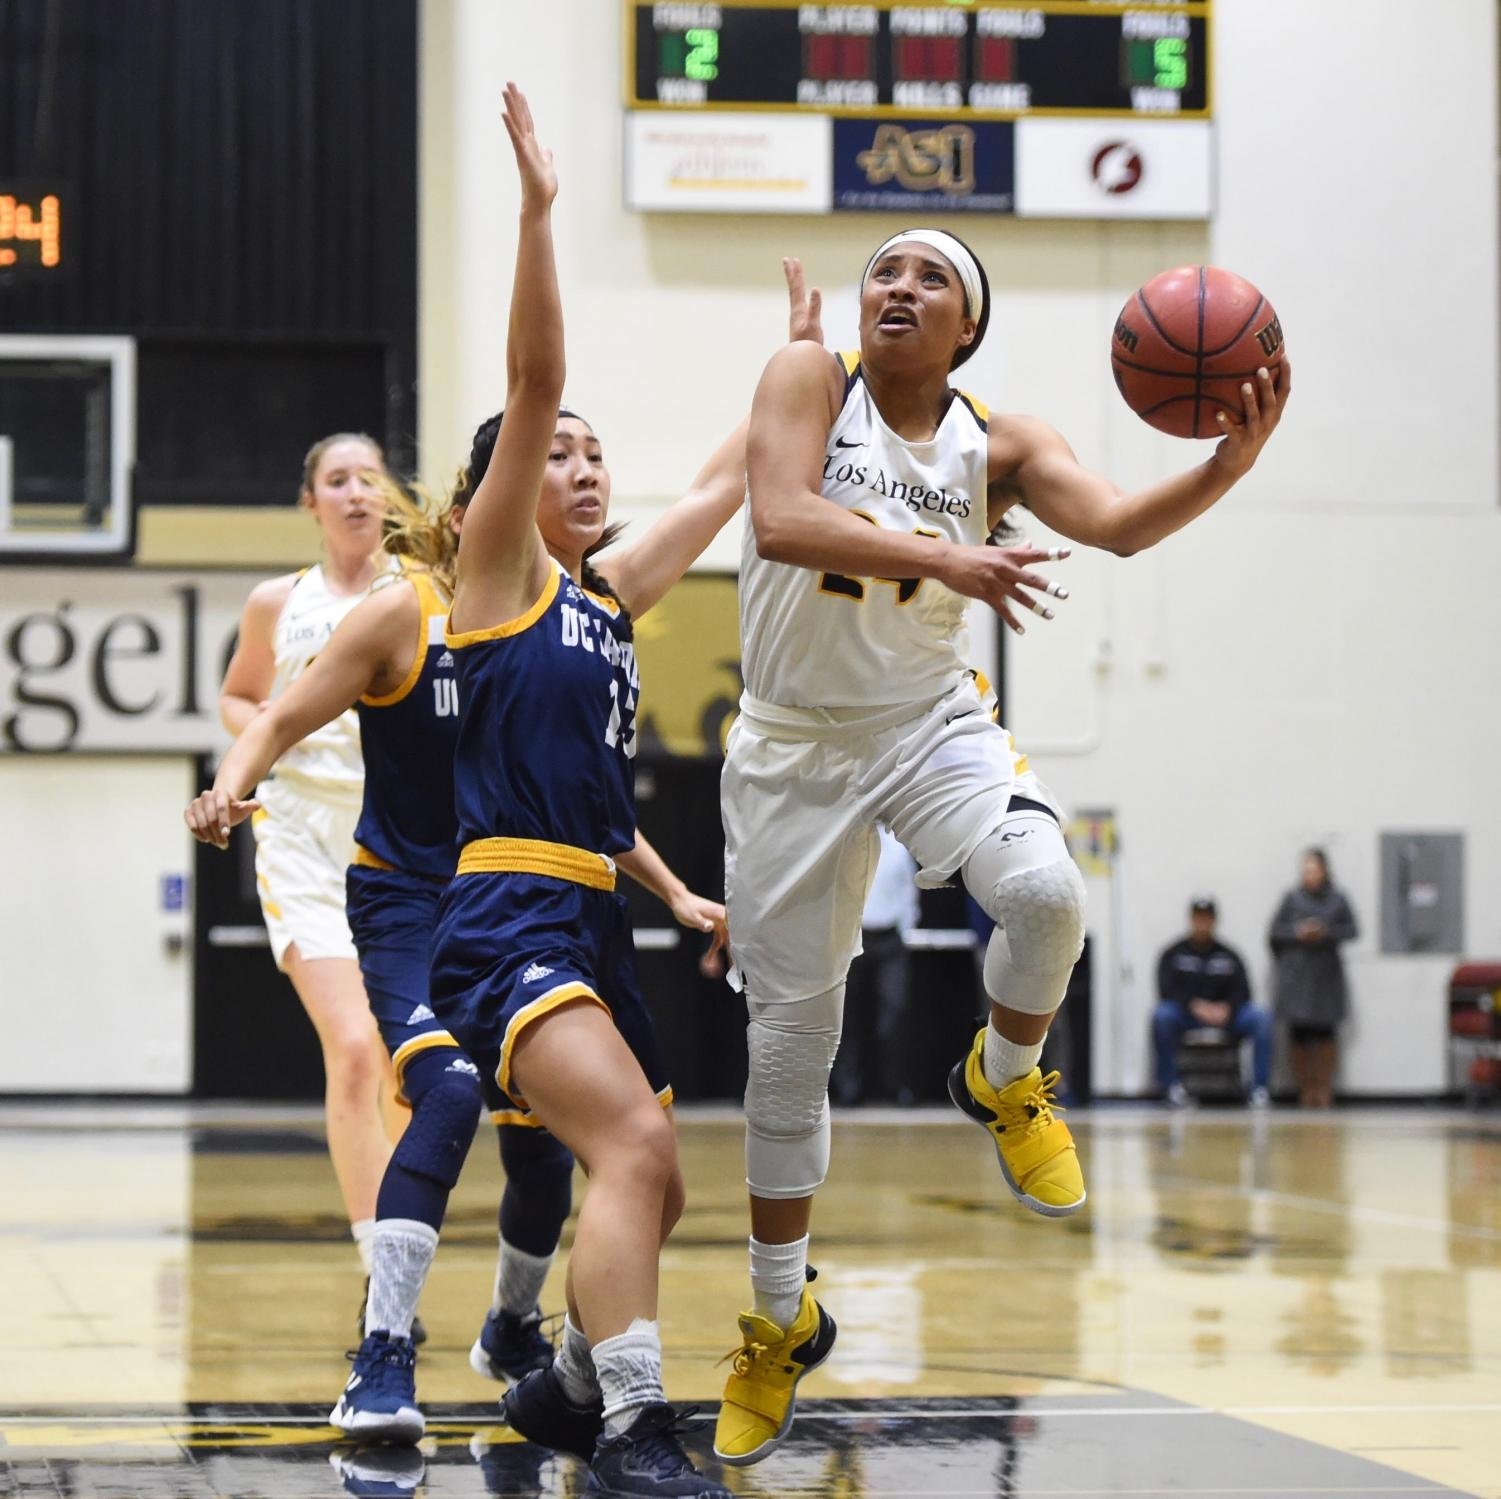 Women's Basketball loses against UCSD in a game of 73-48.